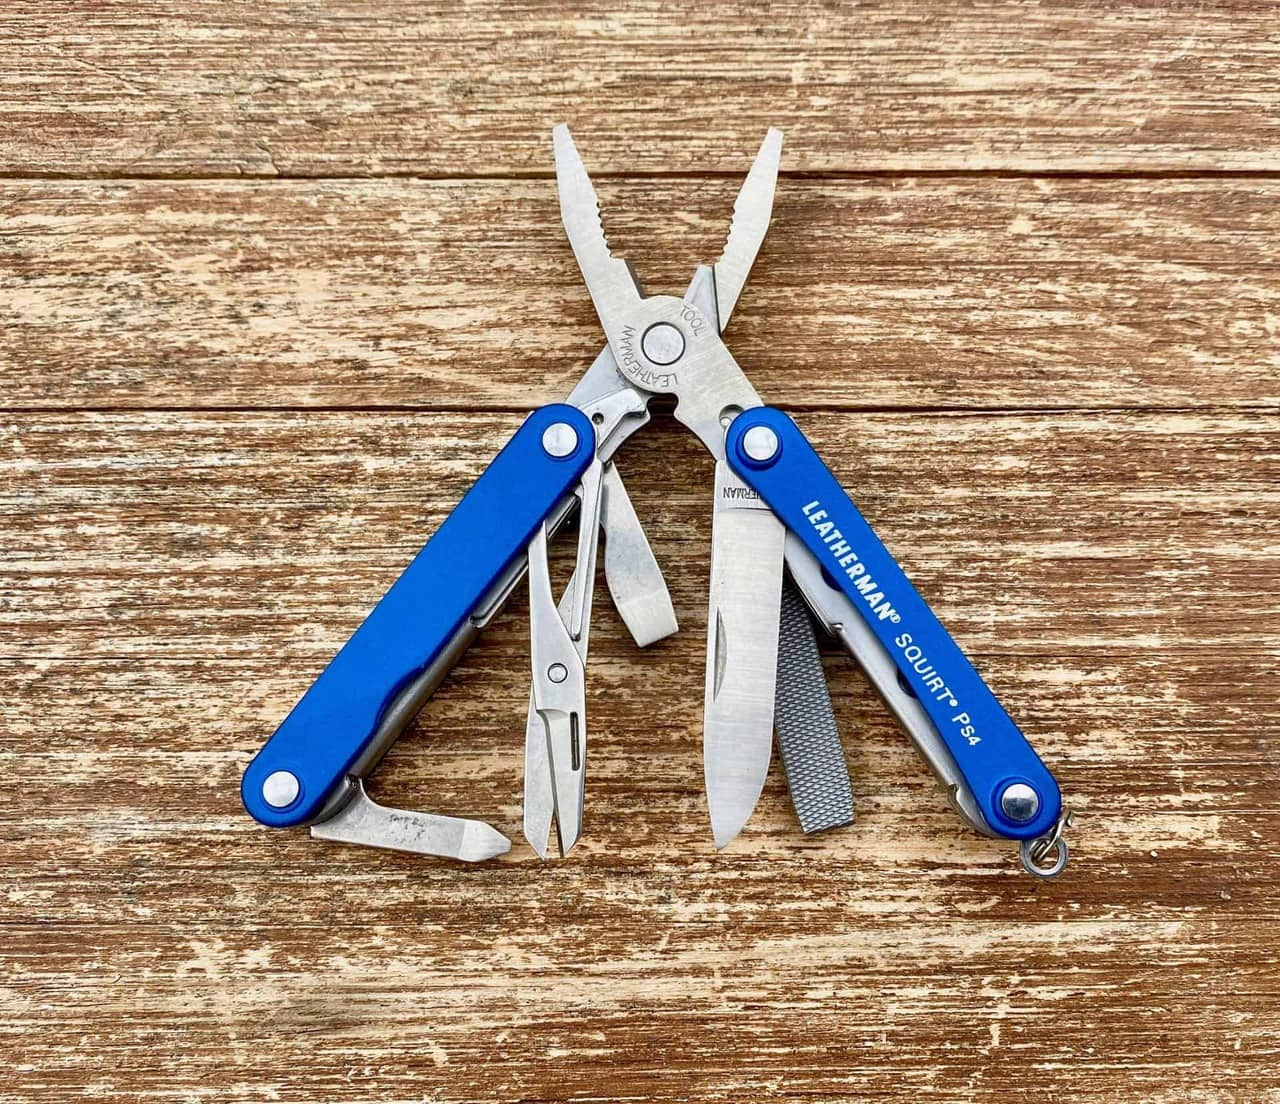 Perfekte_Tools_Wohnmobil_Leatherman_Squirt_PS4